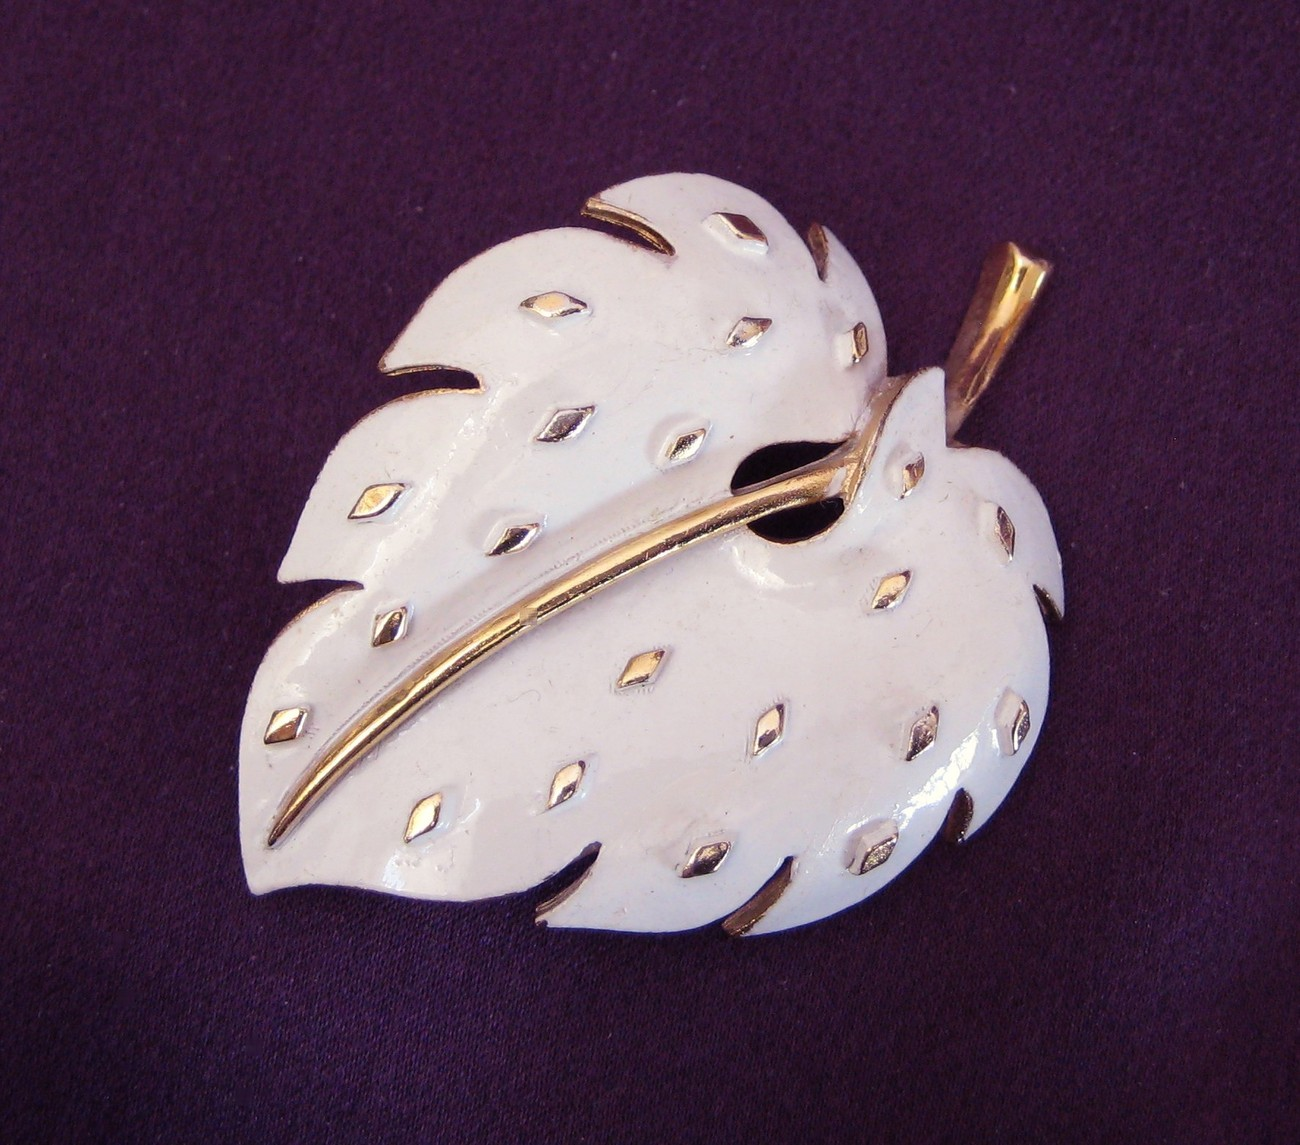 Vintage TRIFARI Gold Tone & White Enamel Leaf Brooch Pin